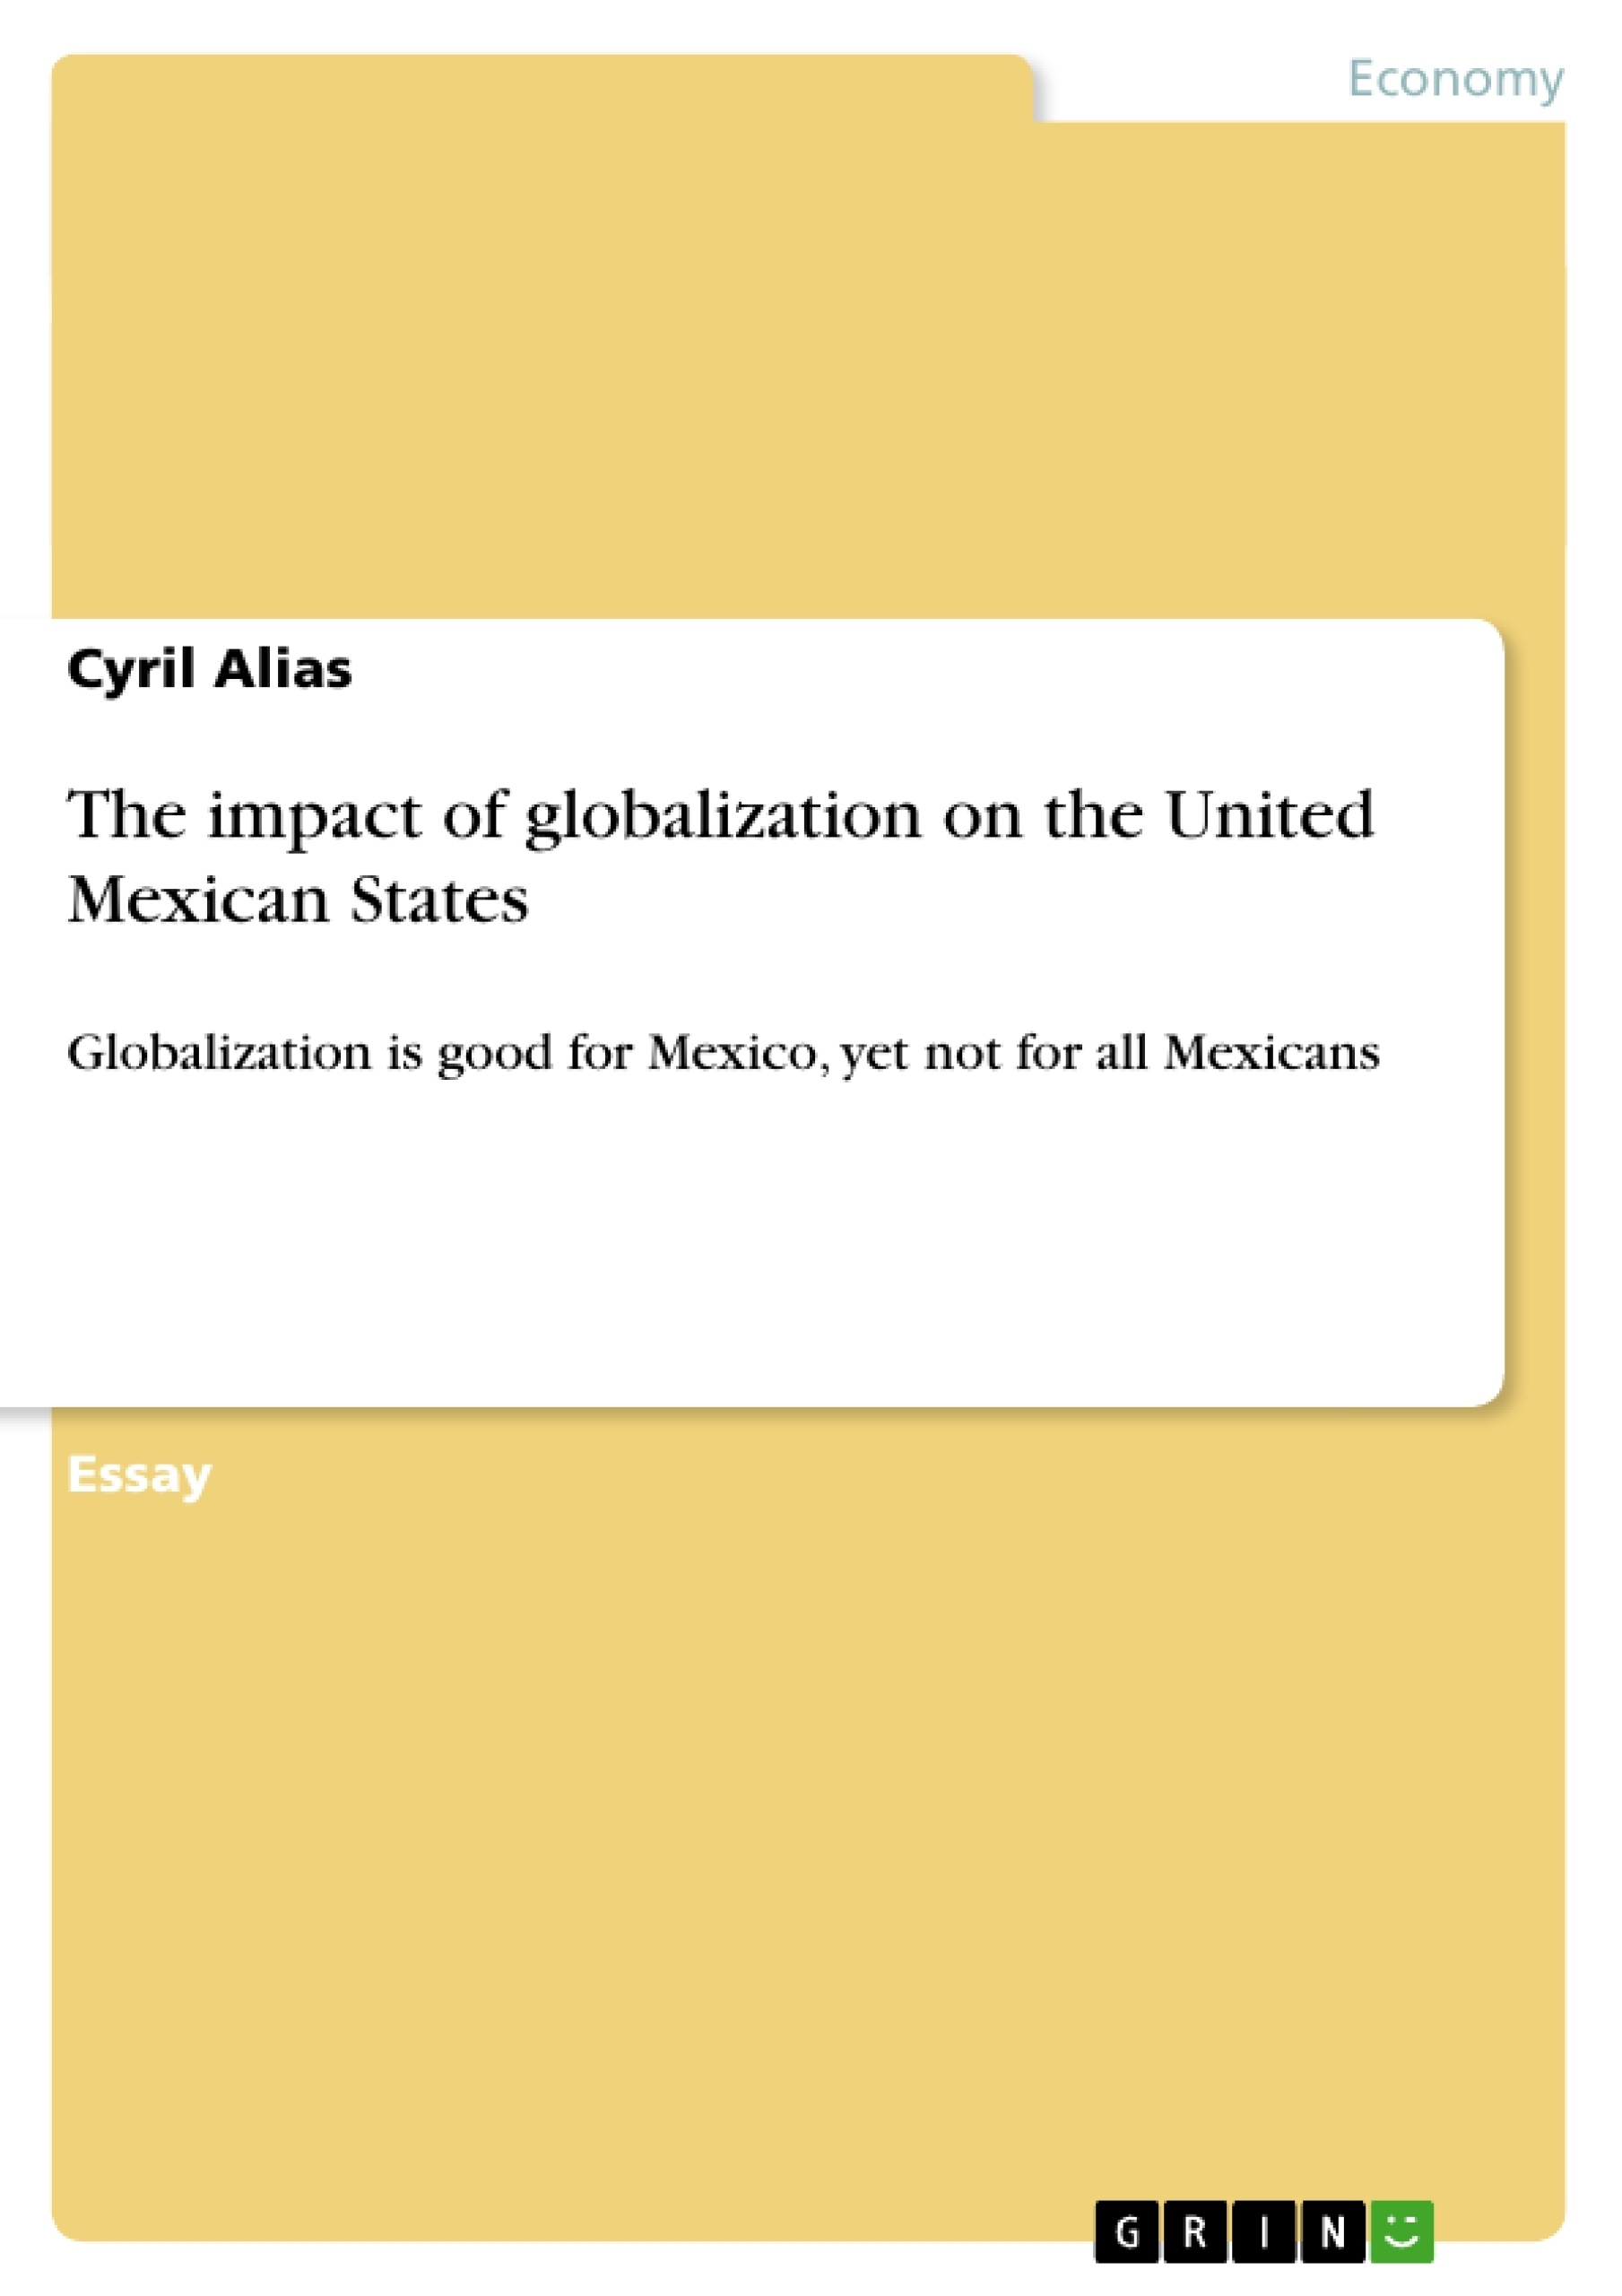 Title: The impact of globalization on the United Mexican States